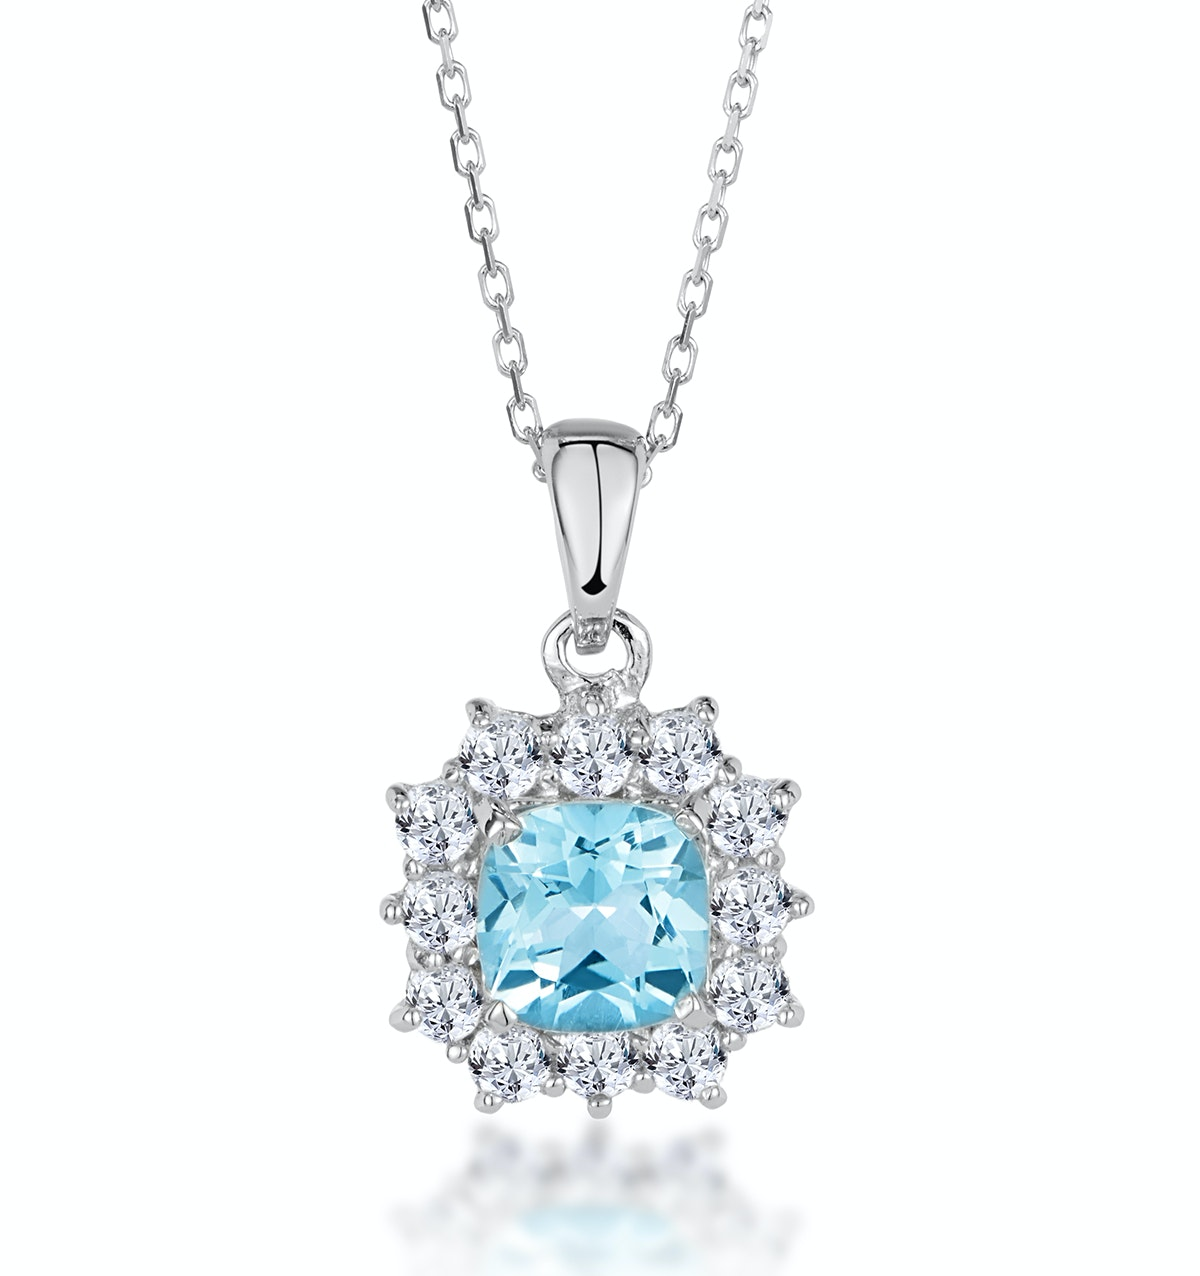 Cushion Cut Blue and White Topaz Silver Necklace - Tesoro Collection